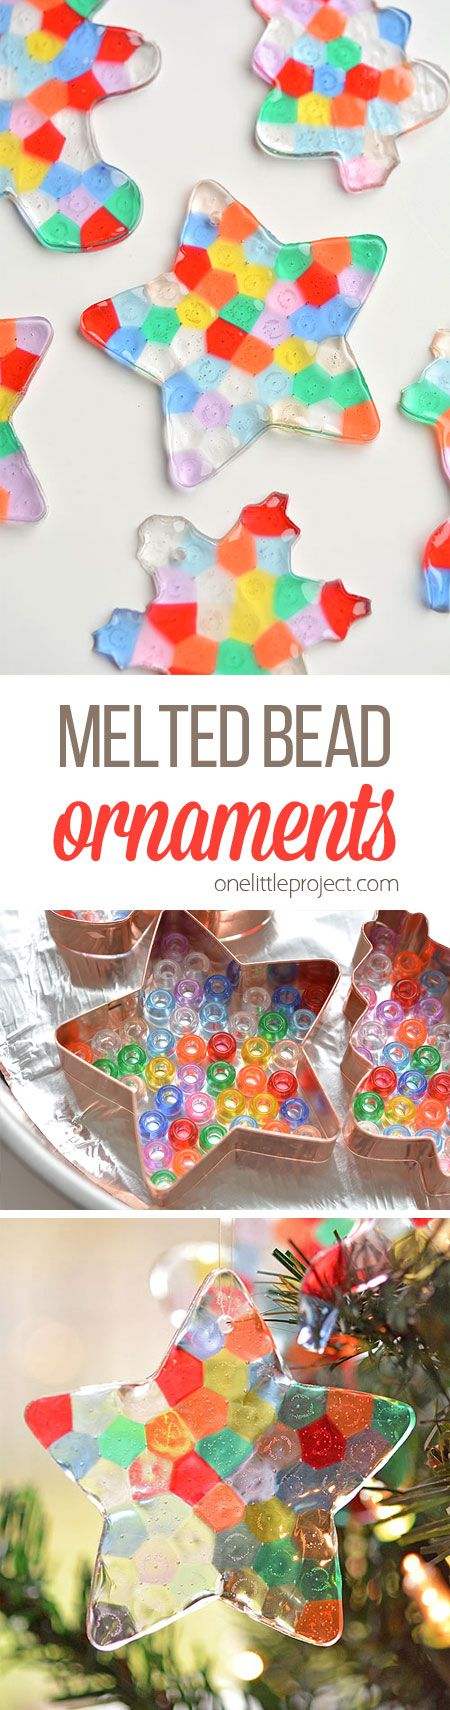 These melted bead ornaments are SO BEAUTIFUL! And theyre so easy to make with pony beads! You can hang them on the Christmas tree,